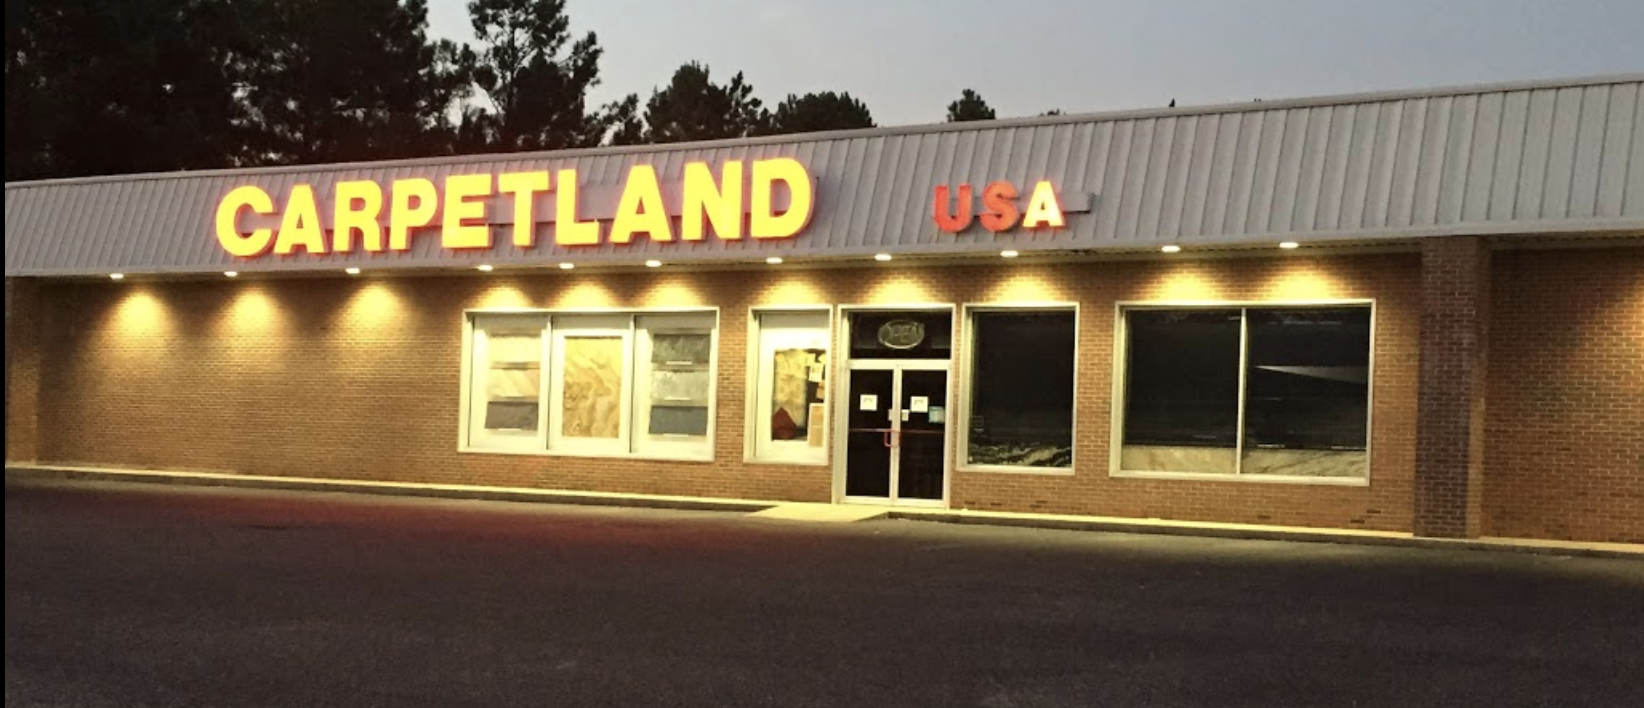 Carpetland USA - 2710 Ross Clark Cir, Dothan, AL 36301